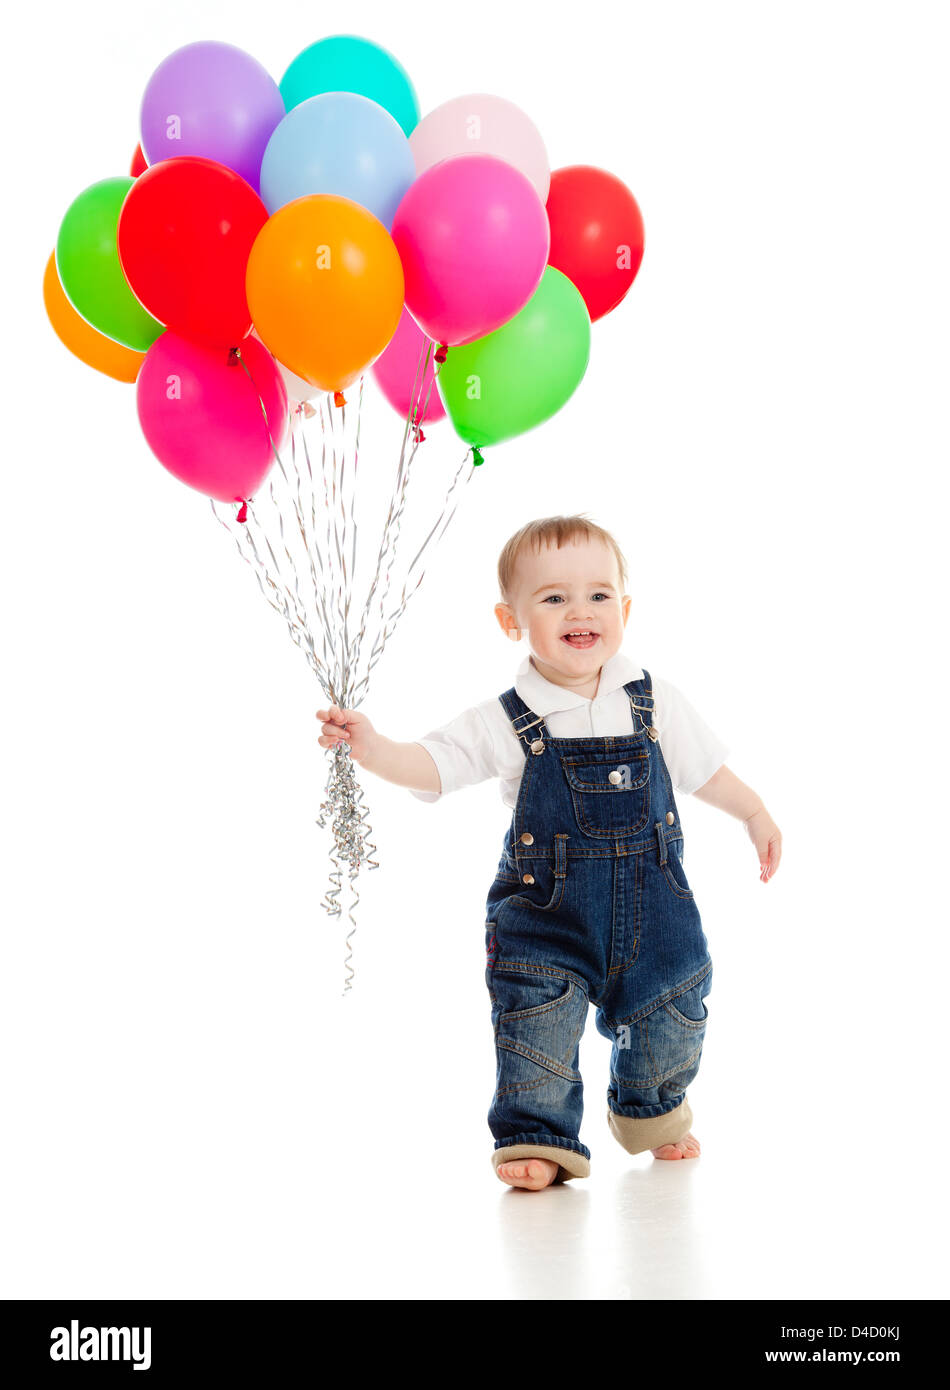 Smiling baby boy with bunch of colorful ballons in his hand. Isolated on white. - Stock Image